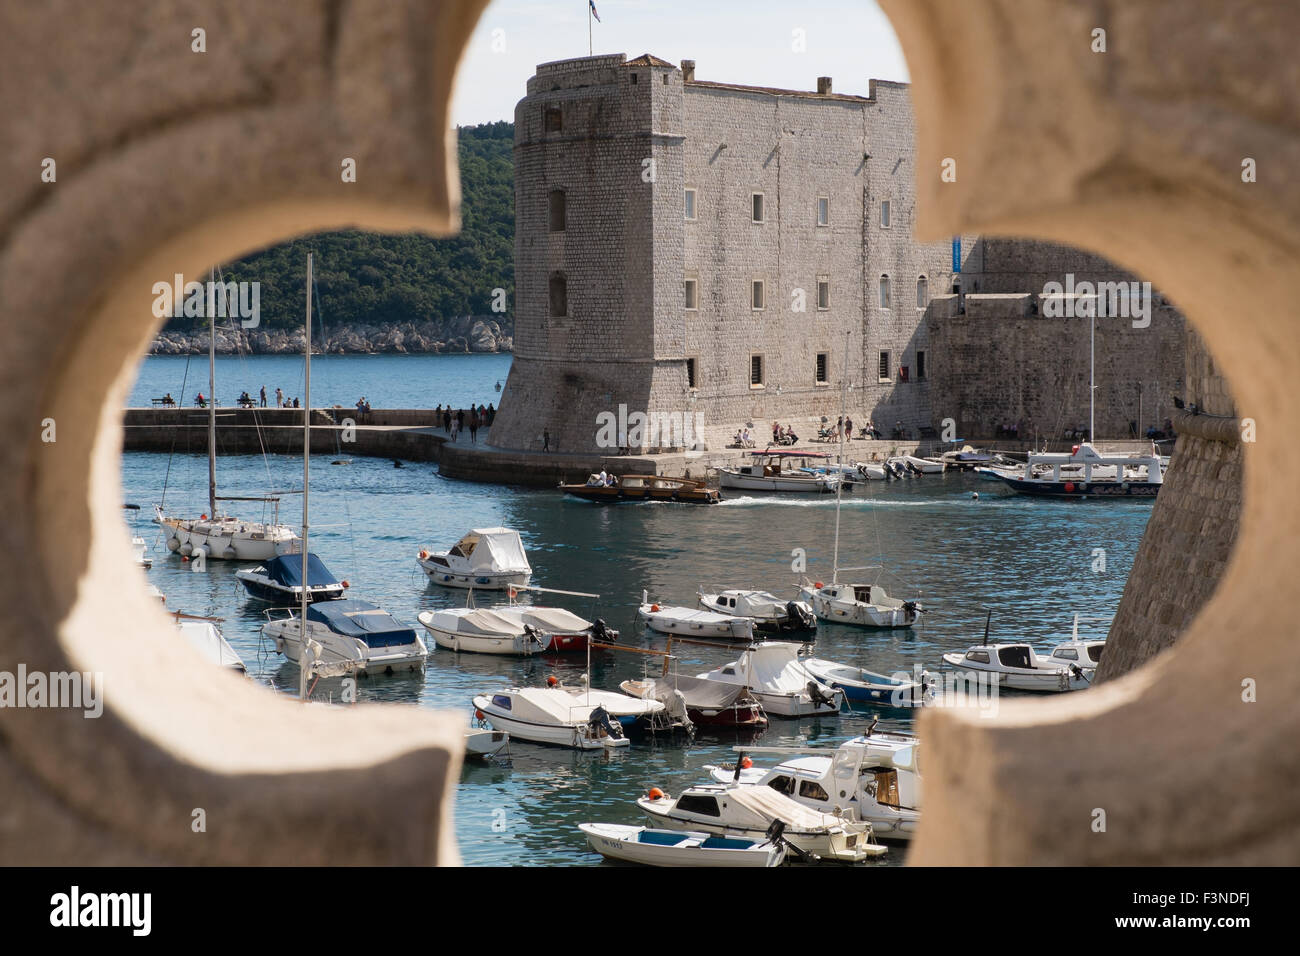 Dubrovnik Old City harbour - Stock Image